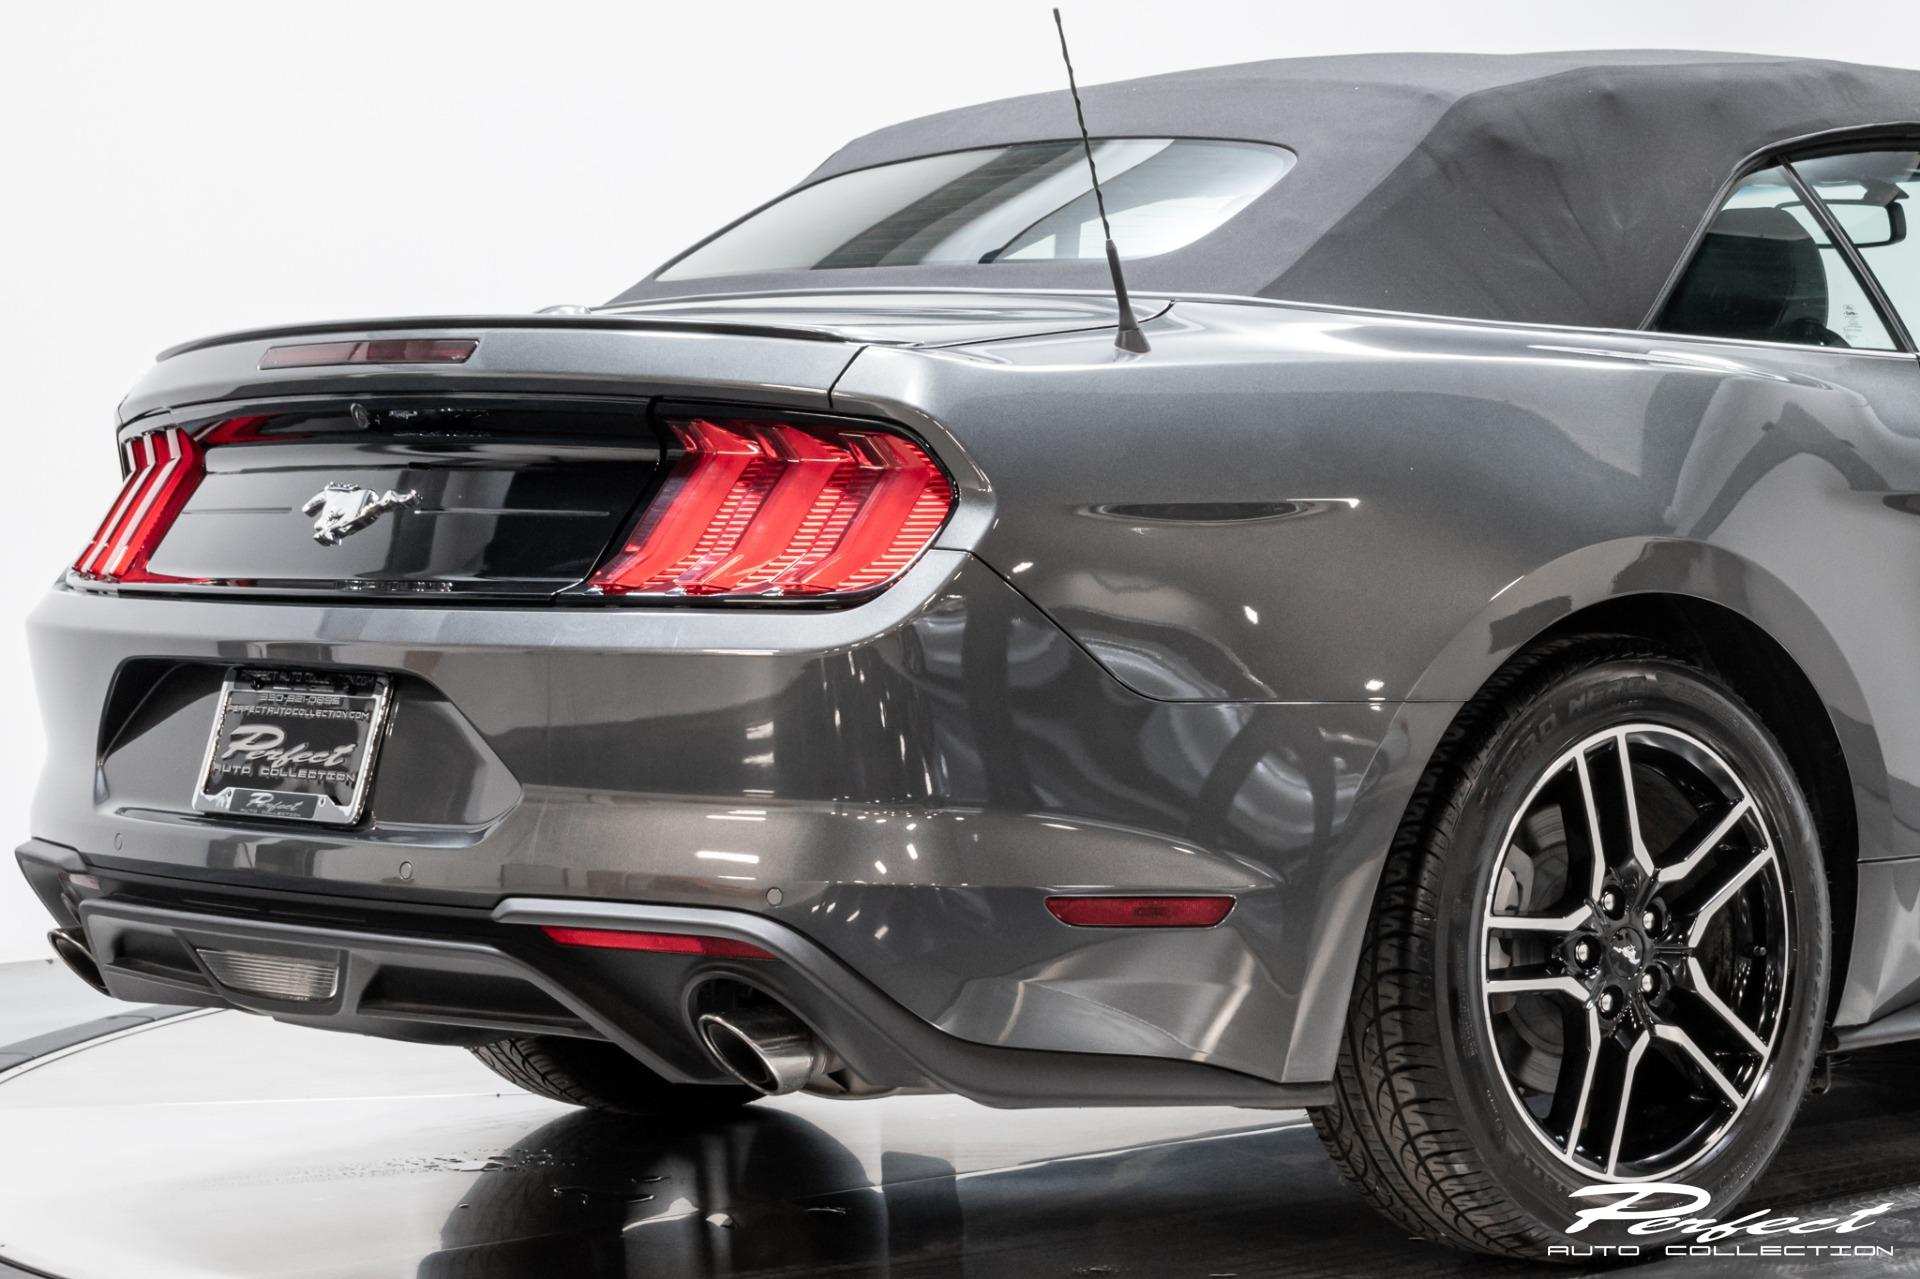 Used 2020 Ford Mustang EcoBoost Premium for sale $27,993 at Perfect Auto Collection in Akron OH 44310 4